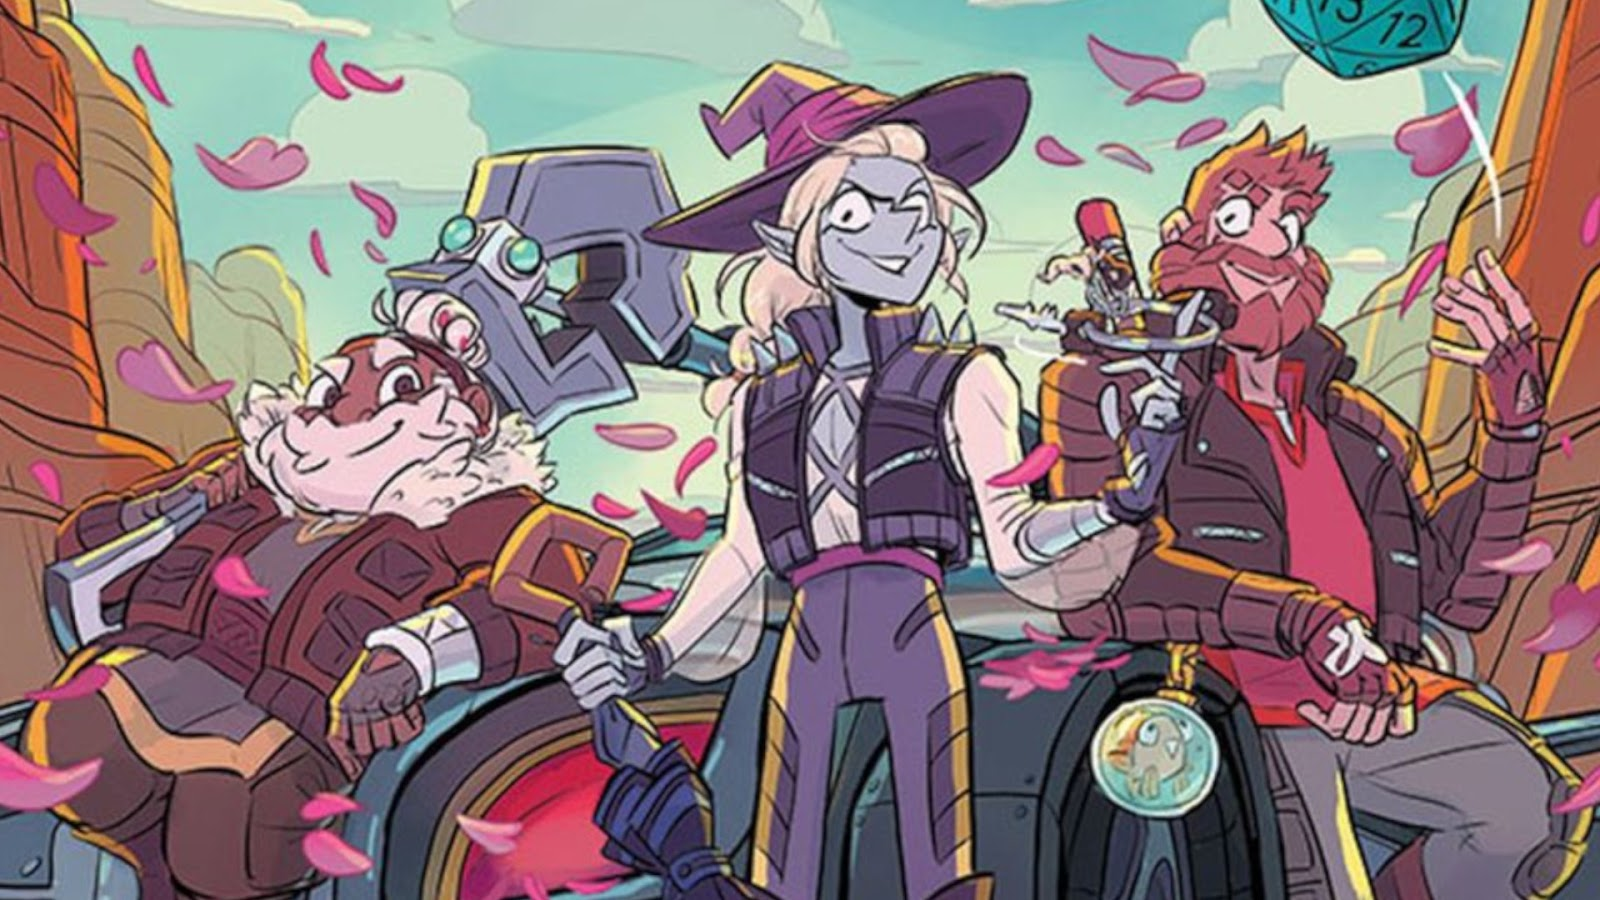 Board Game News Collider Adventure Zone Animated Series Announced for NBC Peacock